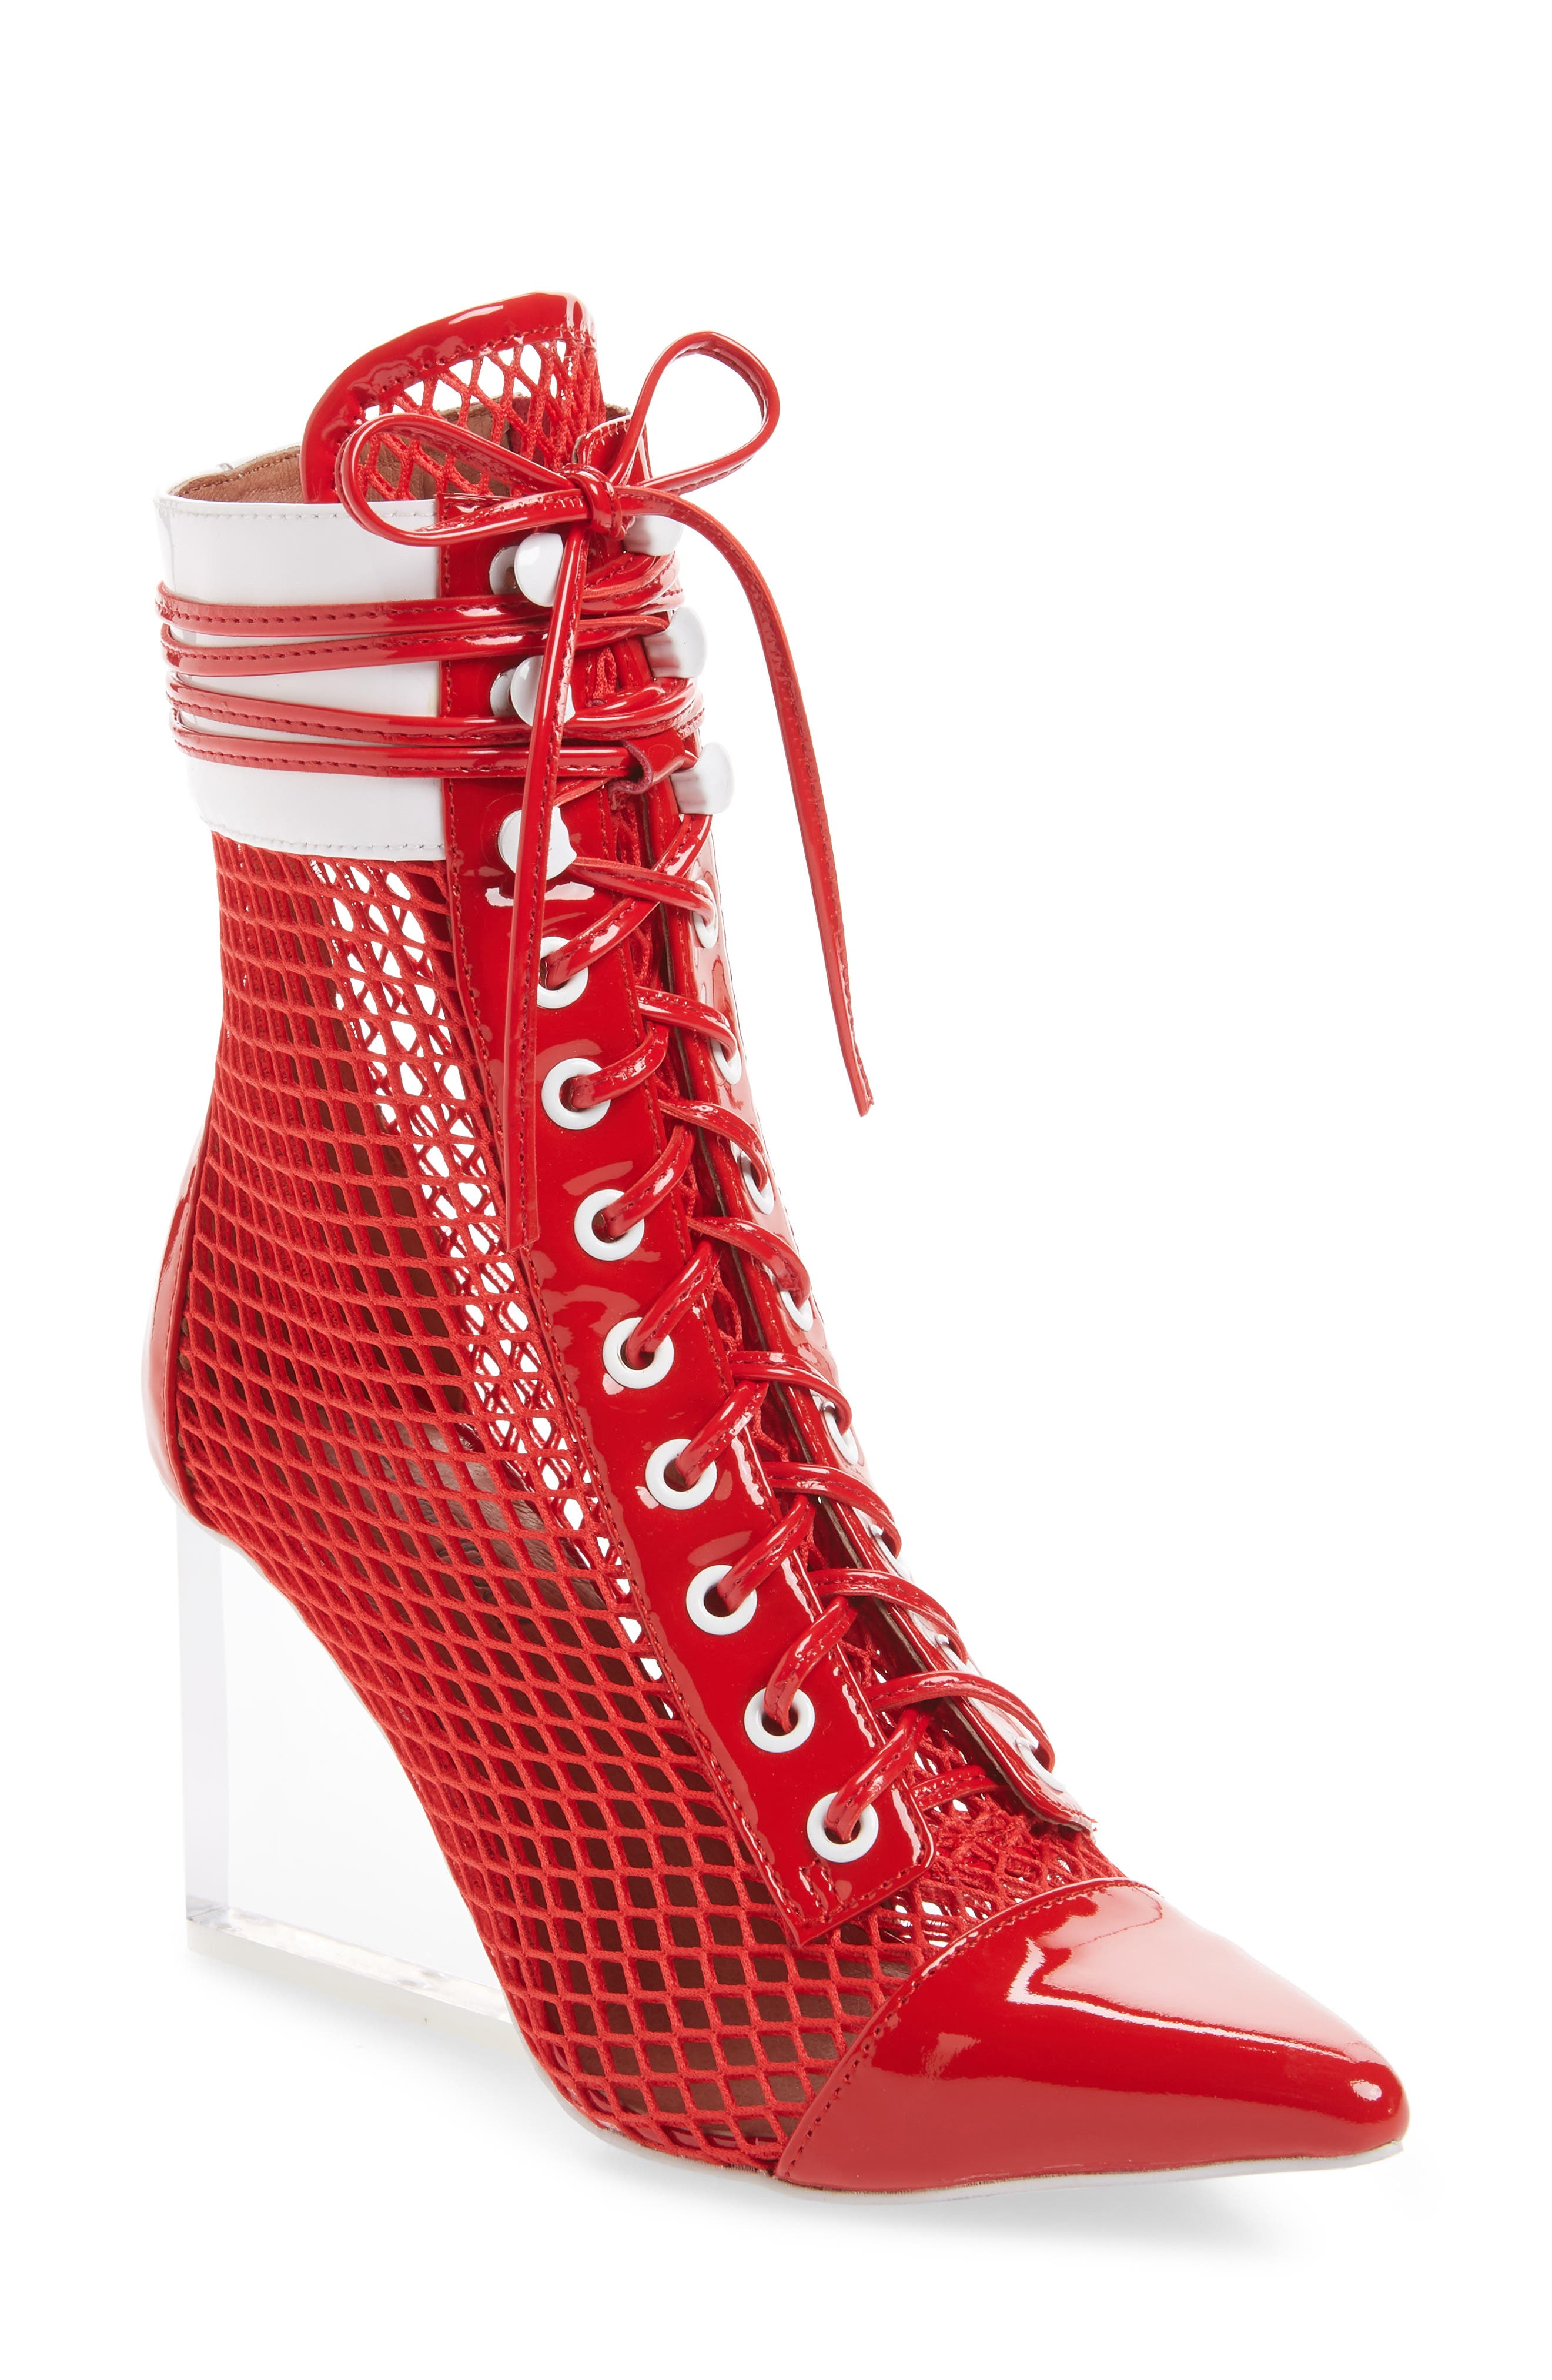 Cardi Mesh Bootie,                         Main,                         color, Red/ White/ Clear